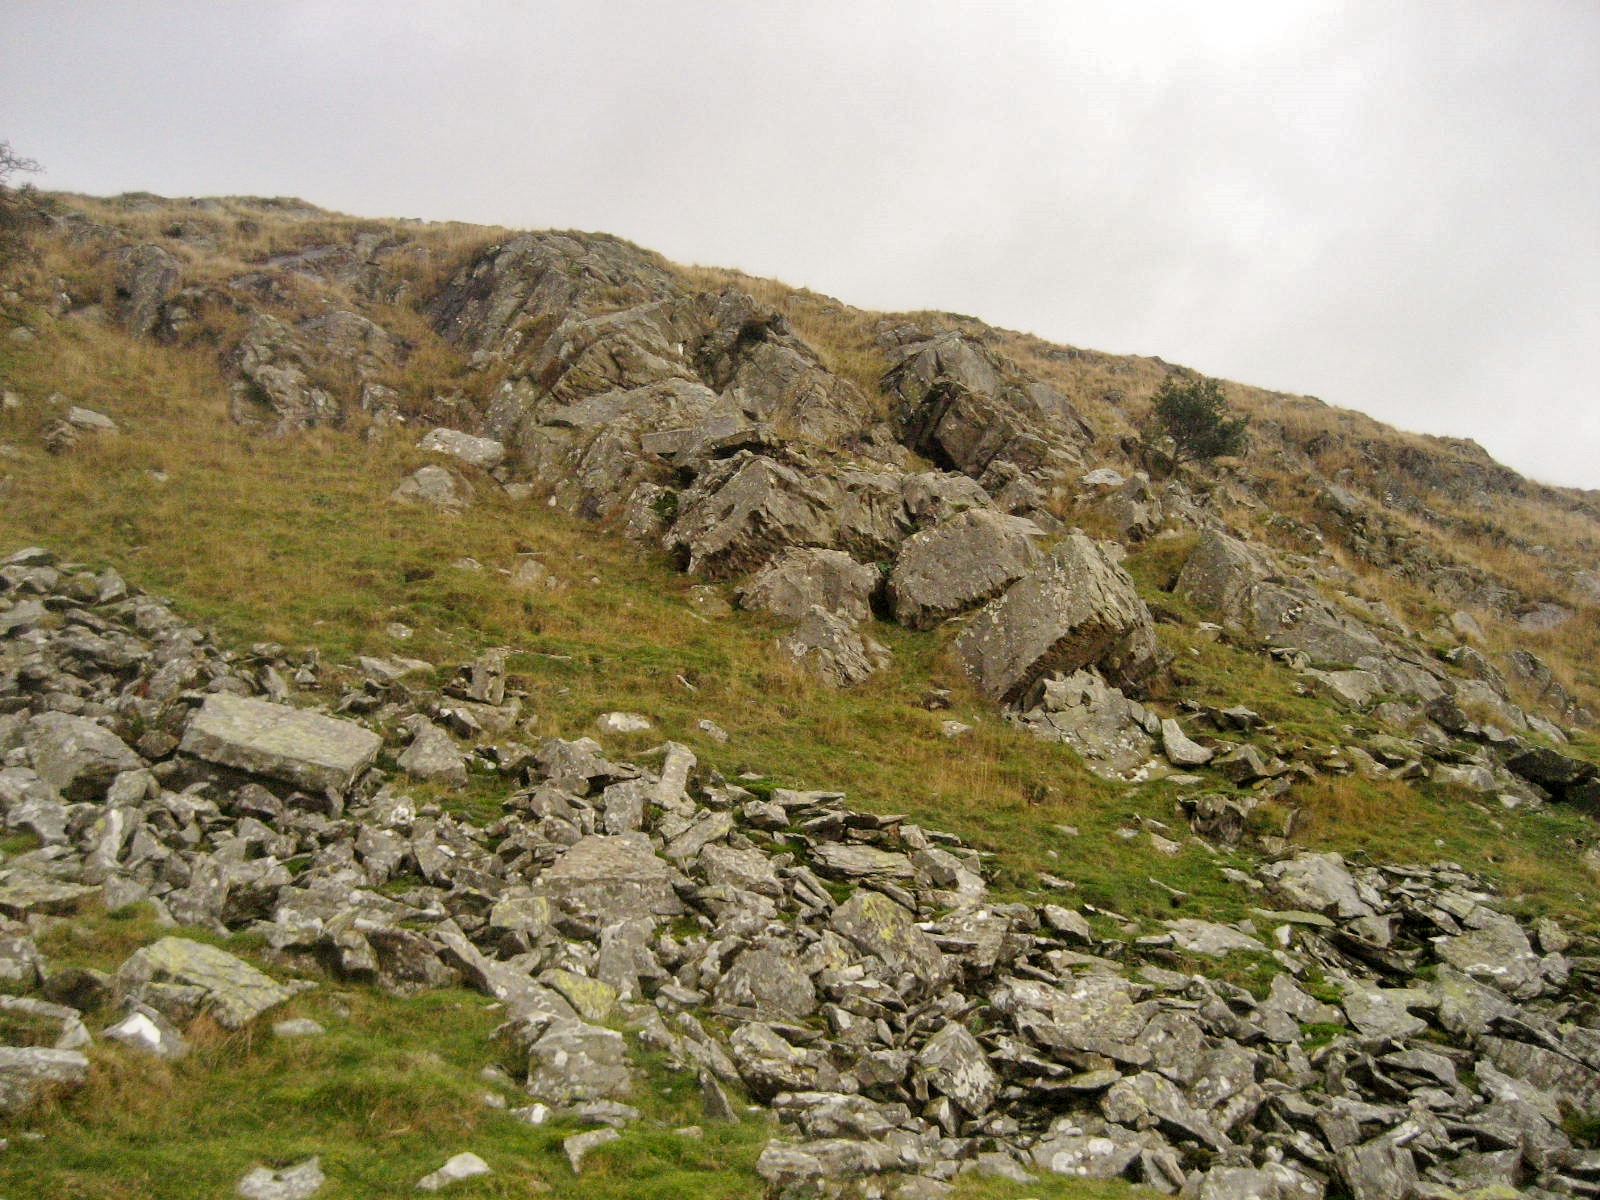 Dipping Silurian beds caused by buckling earth movements, well seen at White Stones in Crummackdale. Stephen Oldfield